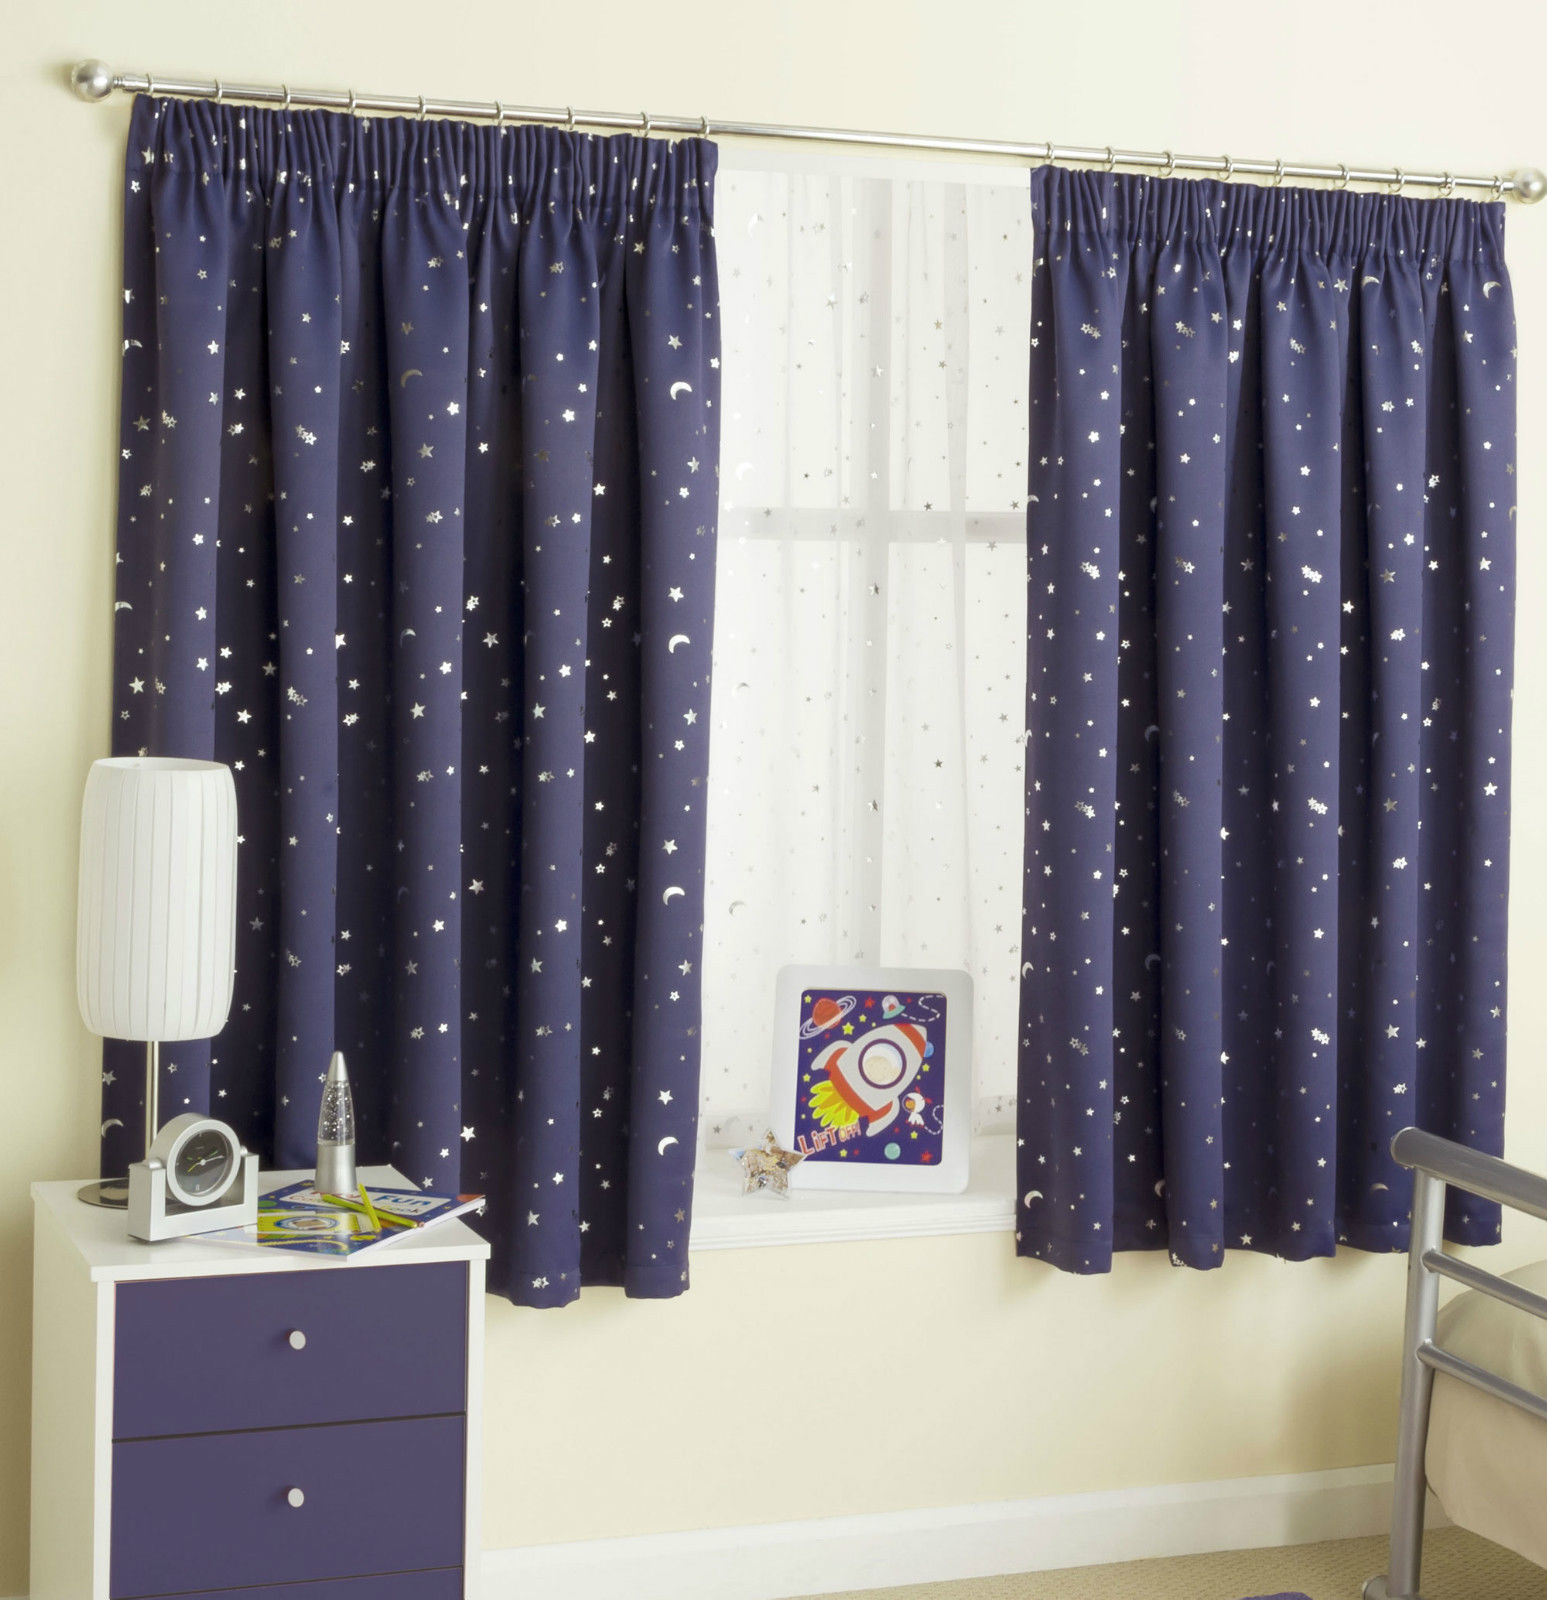 Childrens moons stars curtains thermal blockout tape for Nursery curtains uk